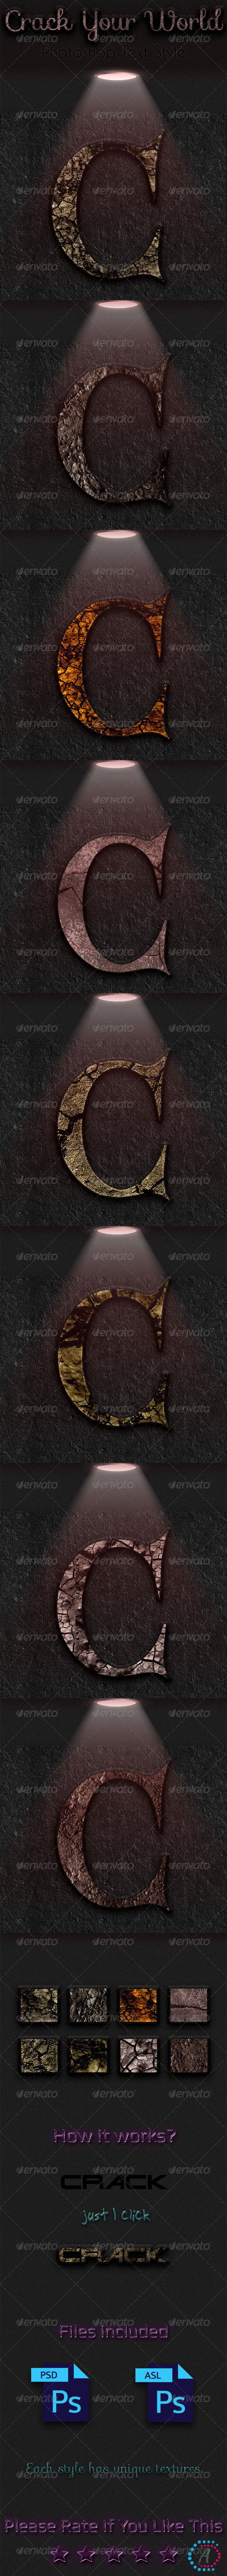 GraphicRiver Crack Your World 7616061